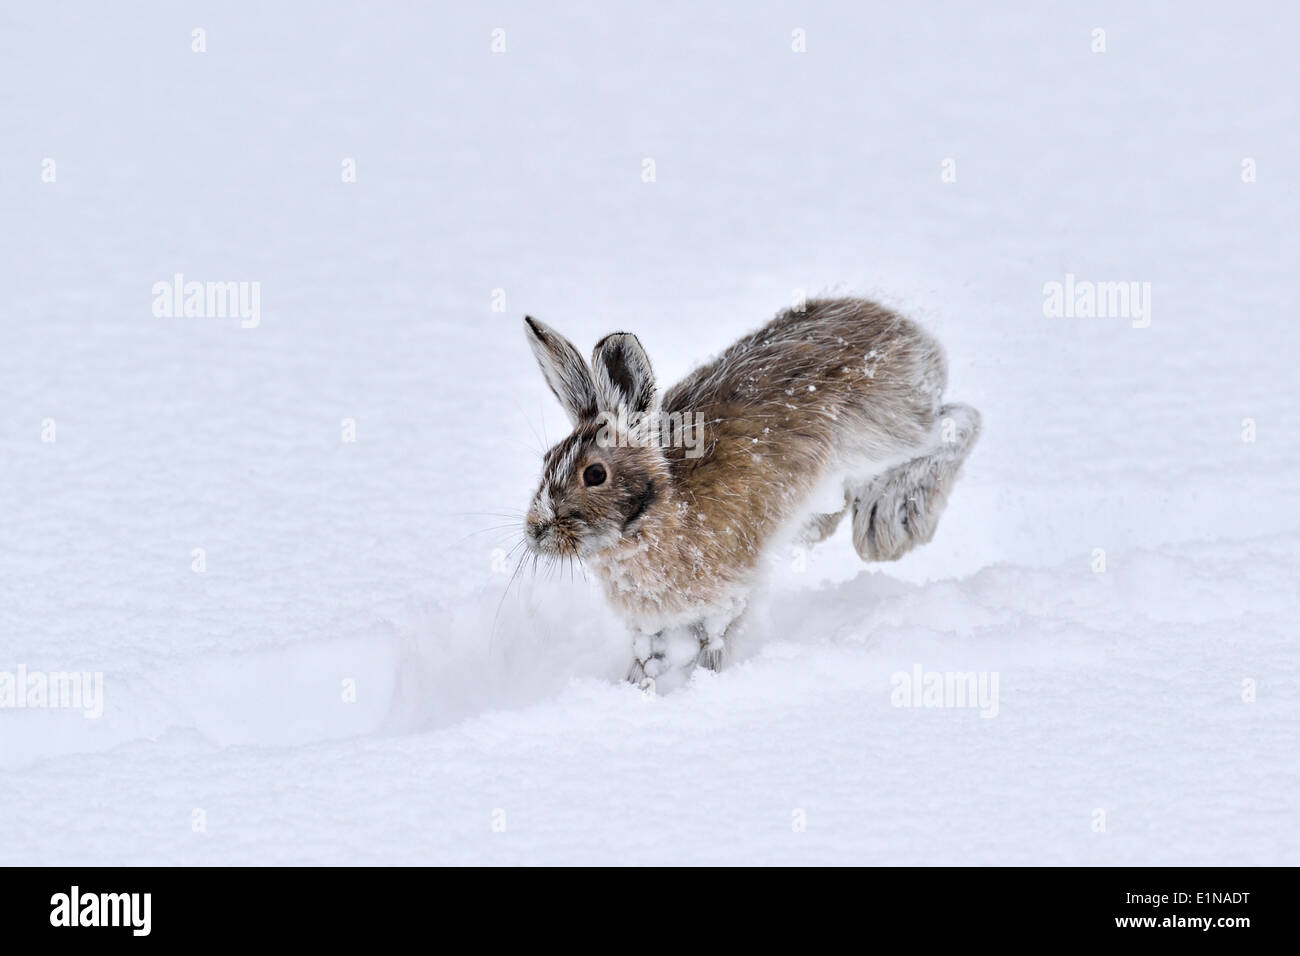 A snowshoe hare hopping along in the freshly falling snow - Stock Image